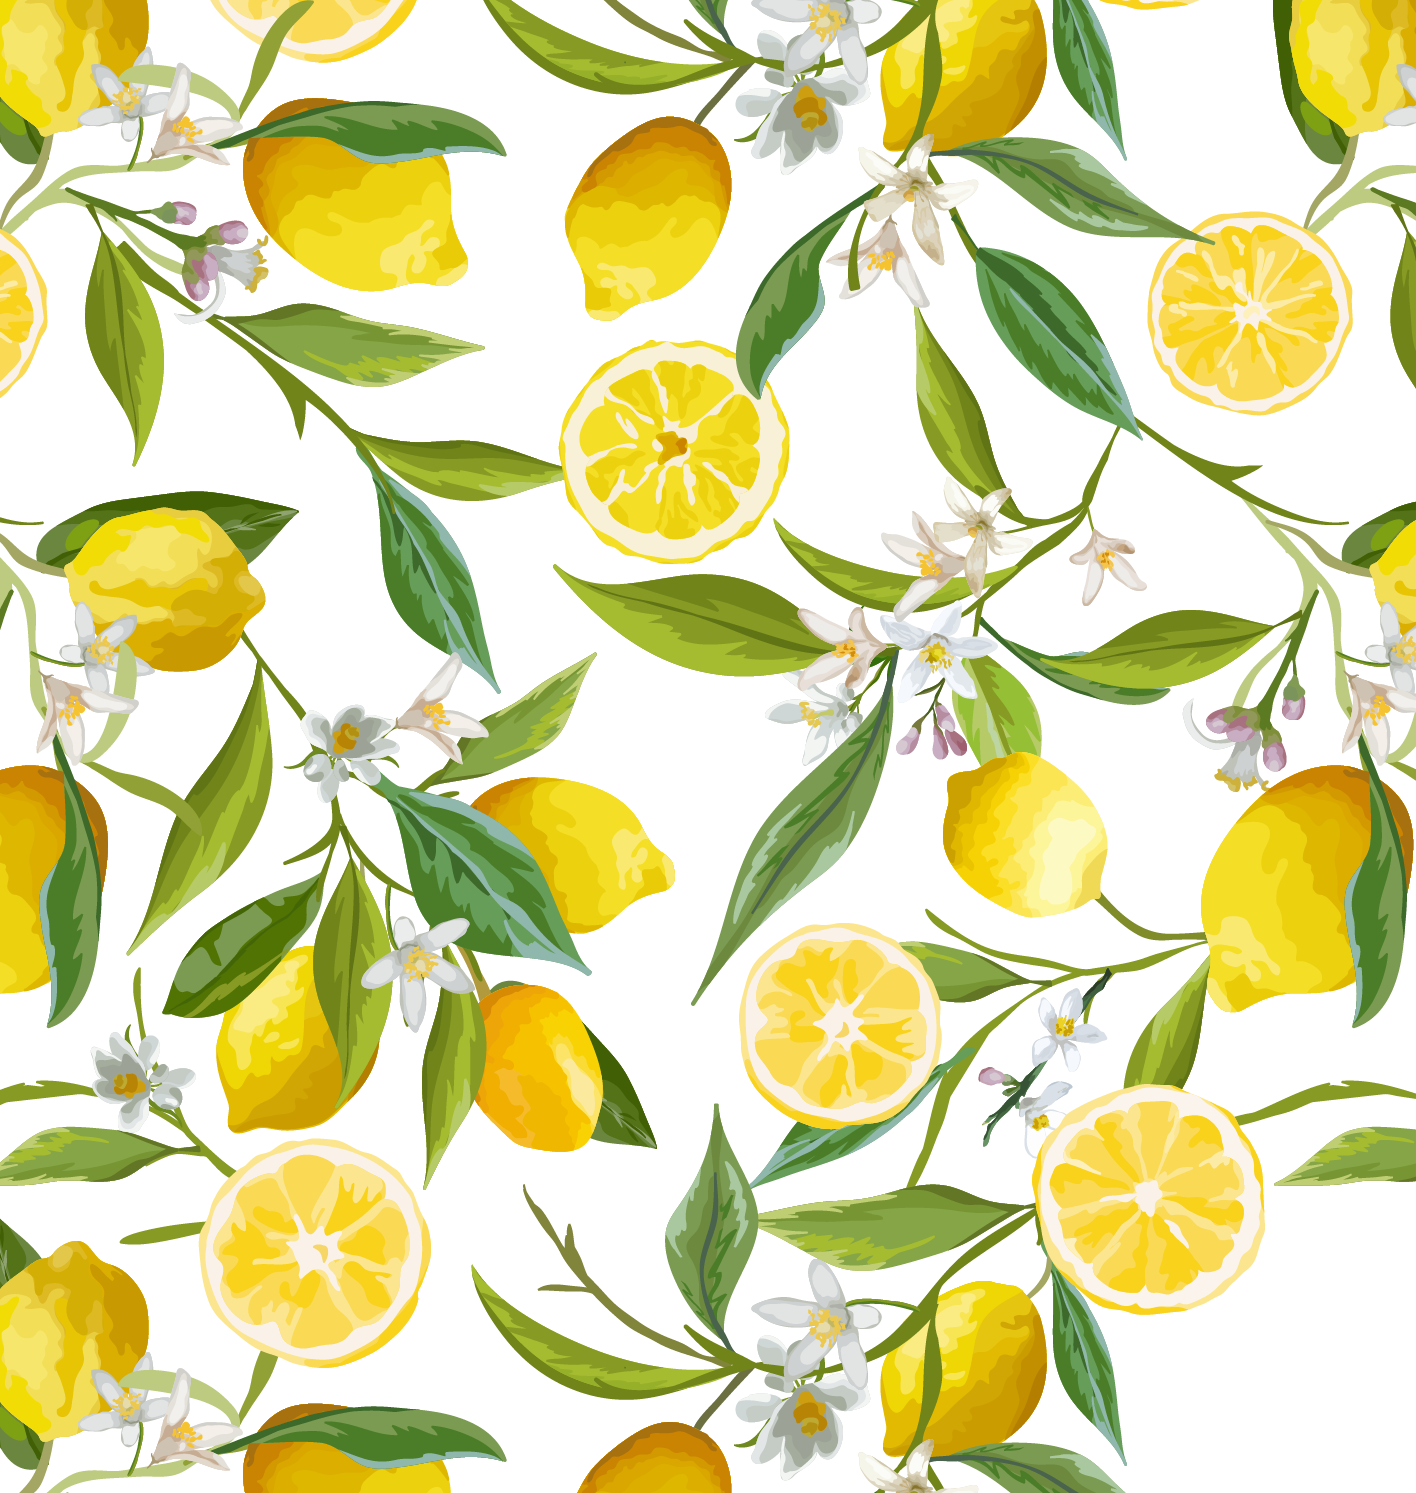 Lemon flower stock photography. Lemons clipart border